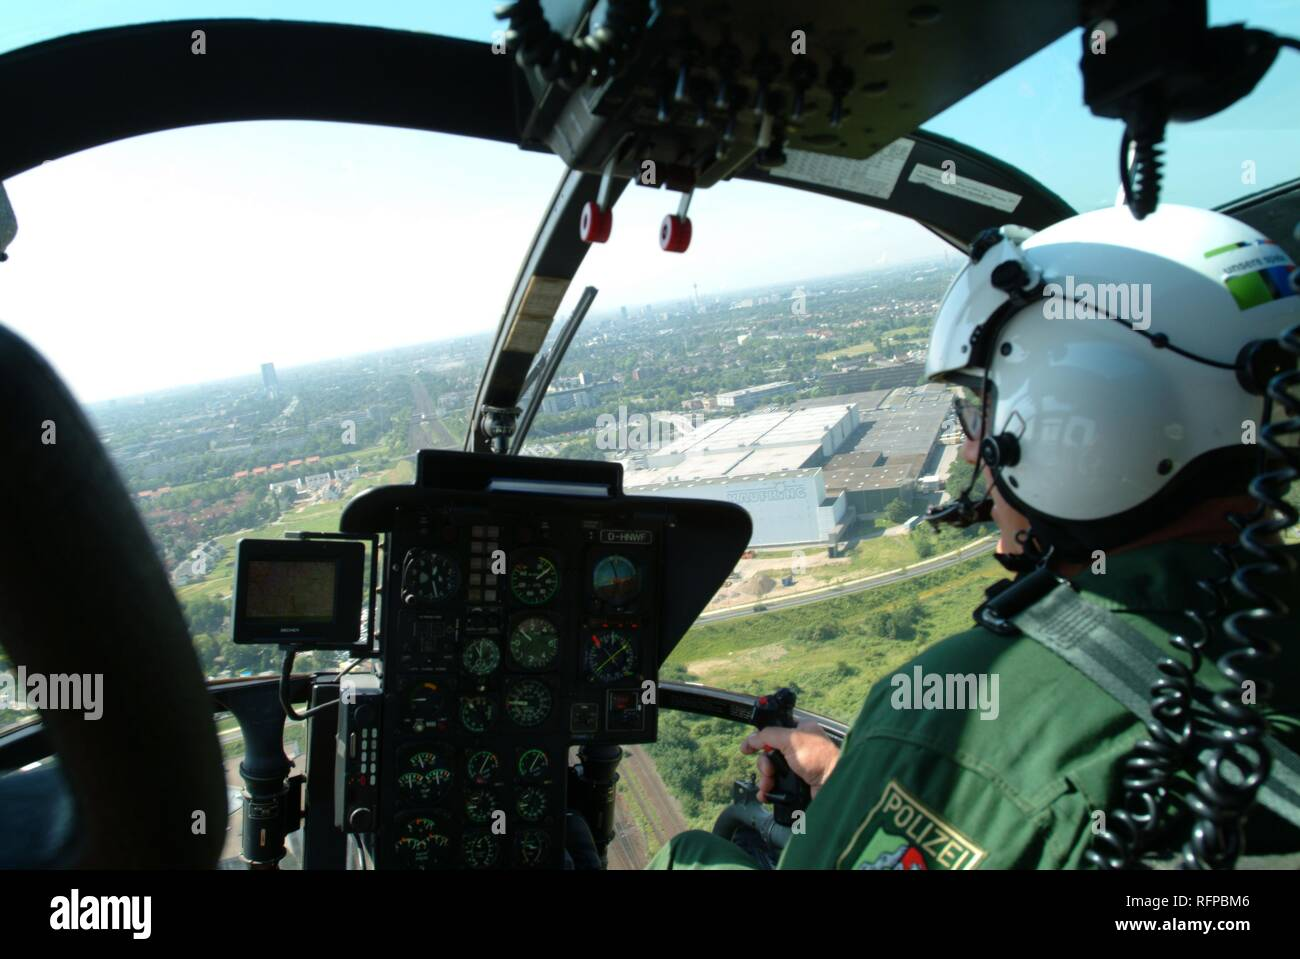 DEU, Germany, Duesseldorf: Police flying squad. Police helicopters. Type MBB BO105, Cockpit. - Stock Image